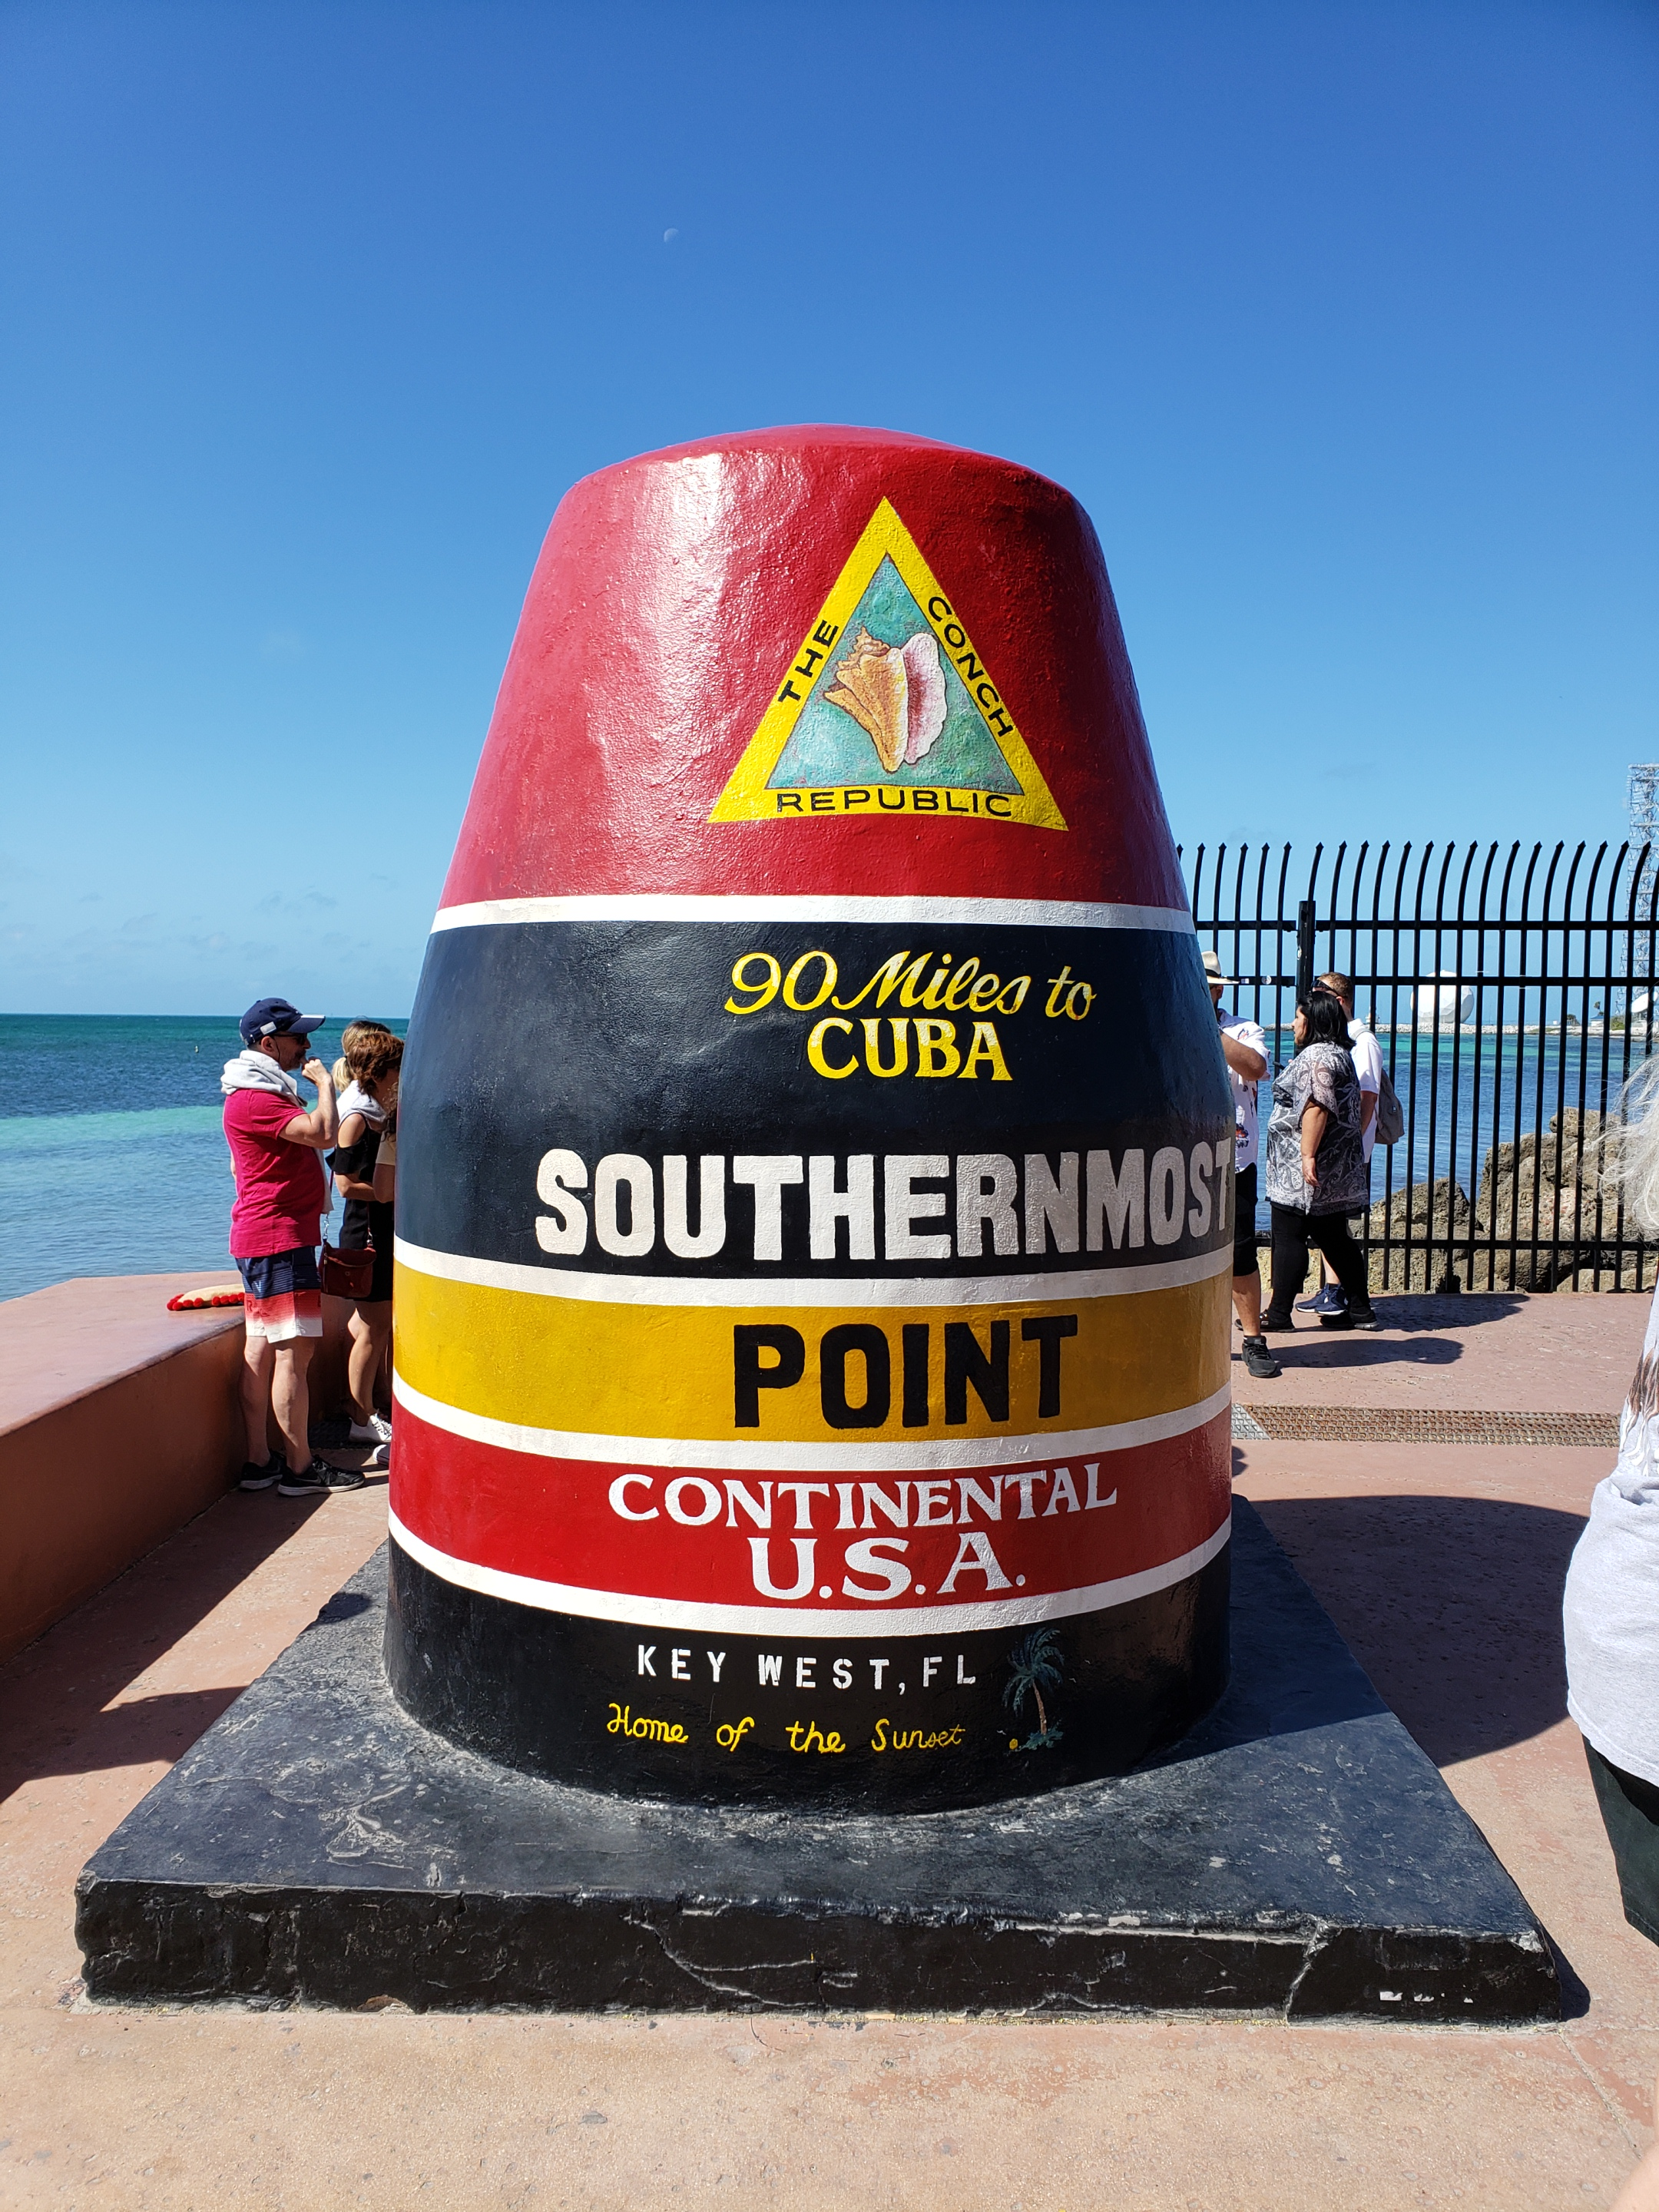 Southernmost Point